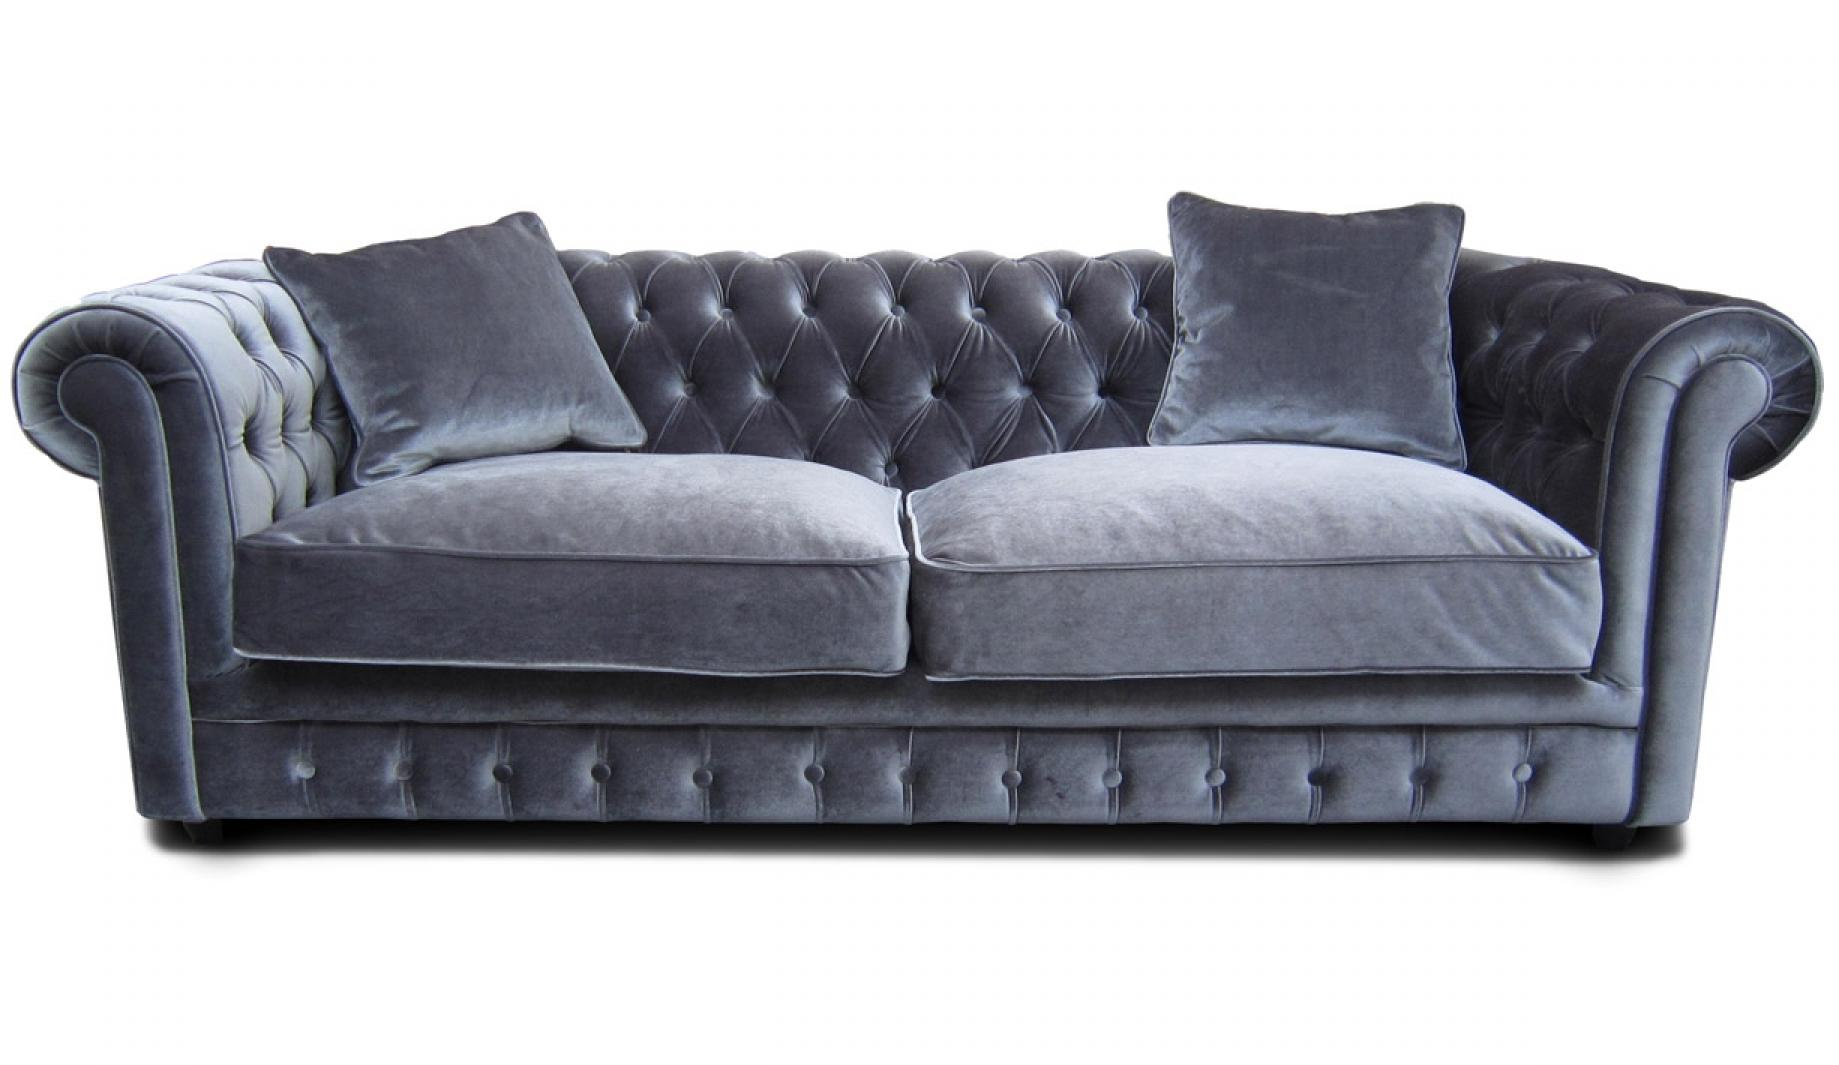 Photos canap chesterfield velours convertible - Canape chesterfield convertible ...